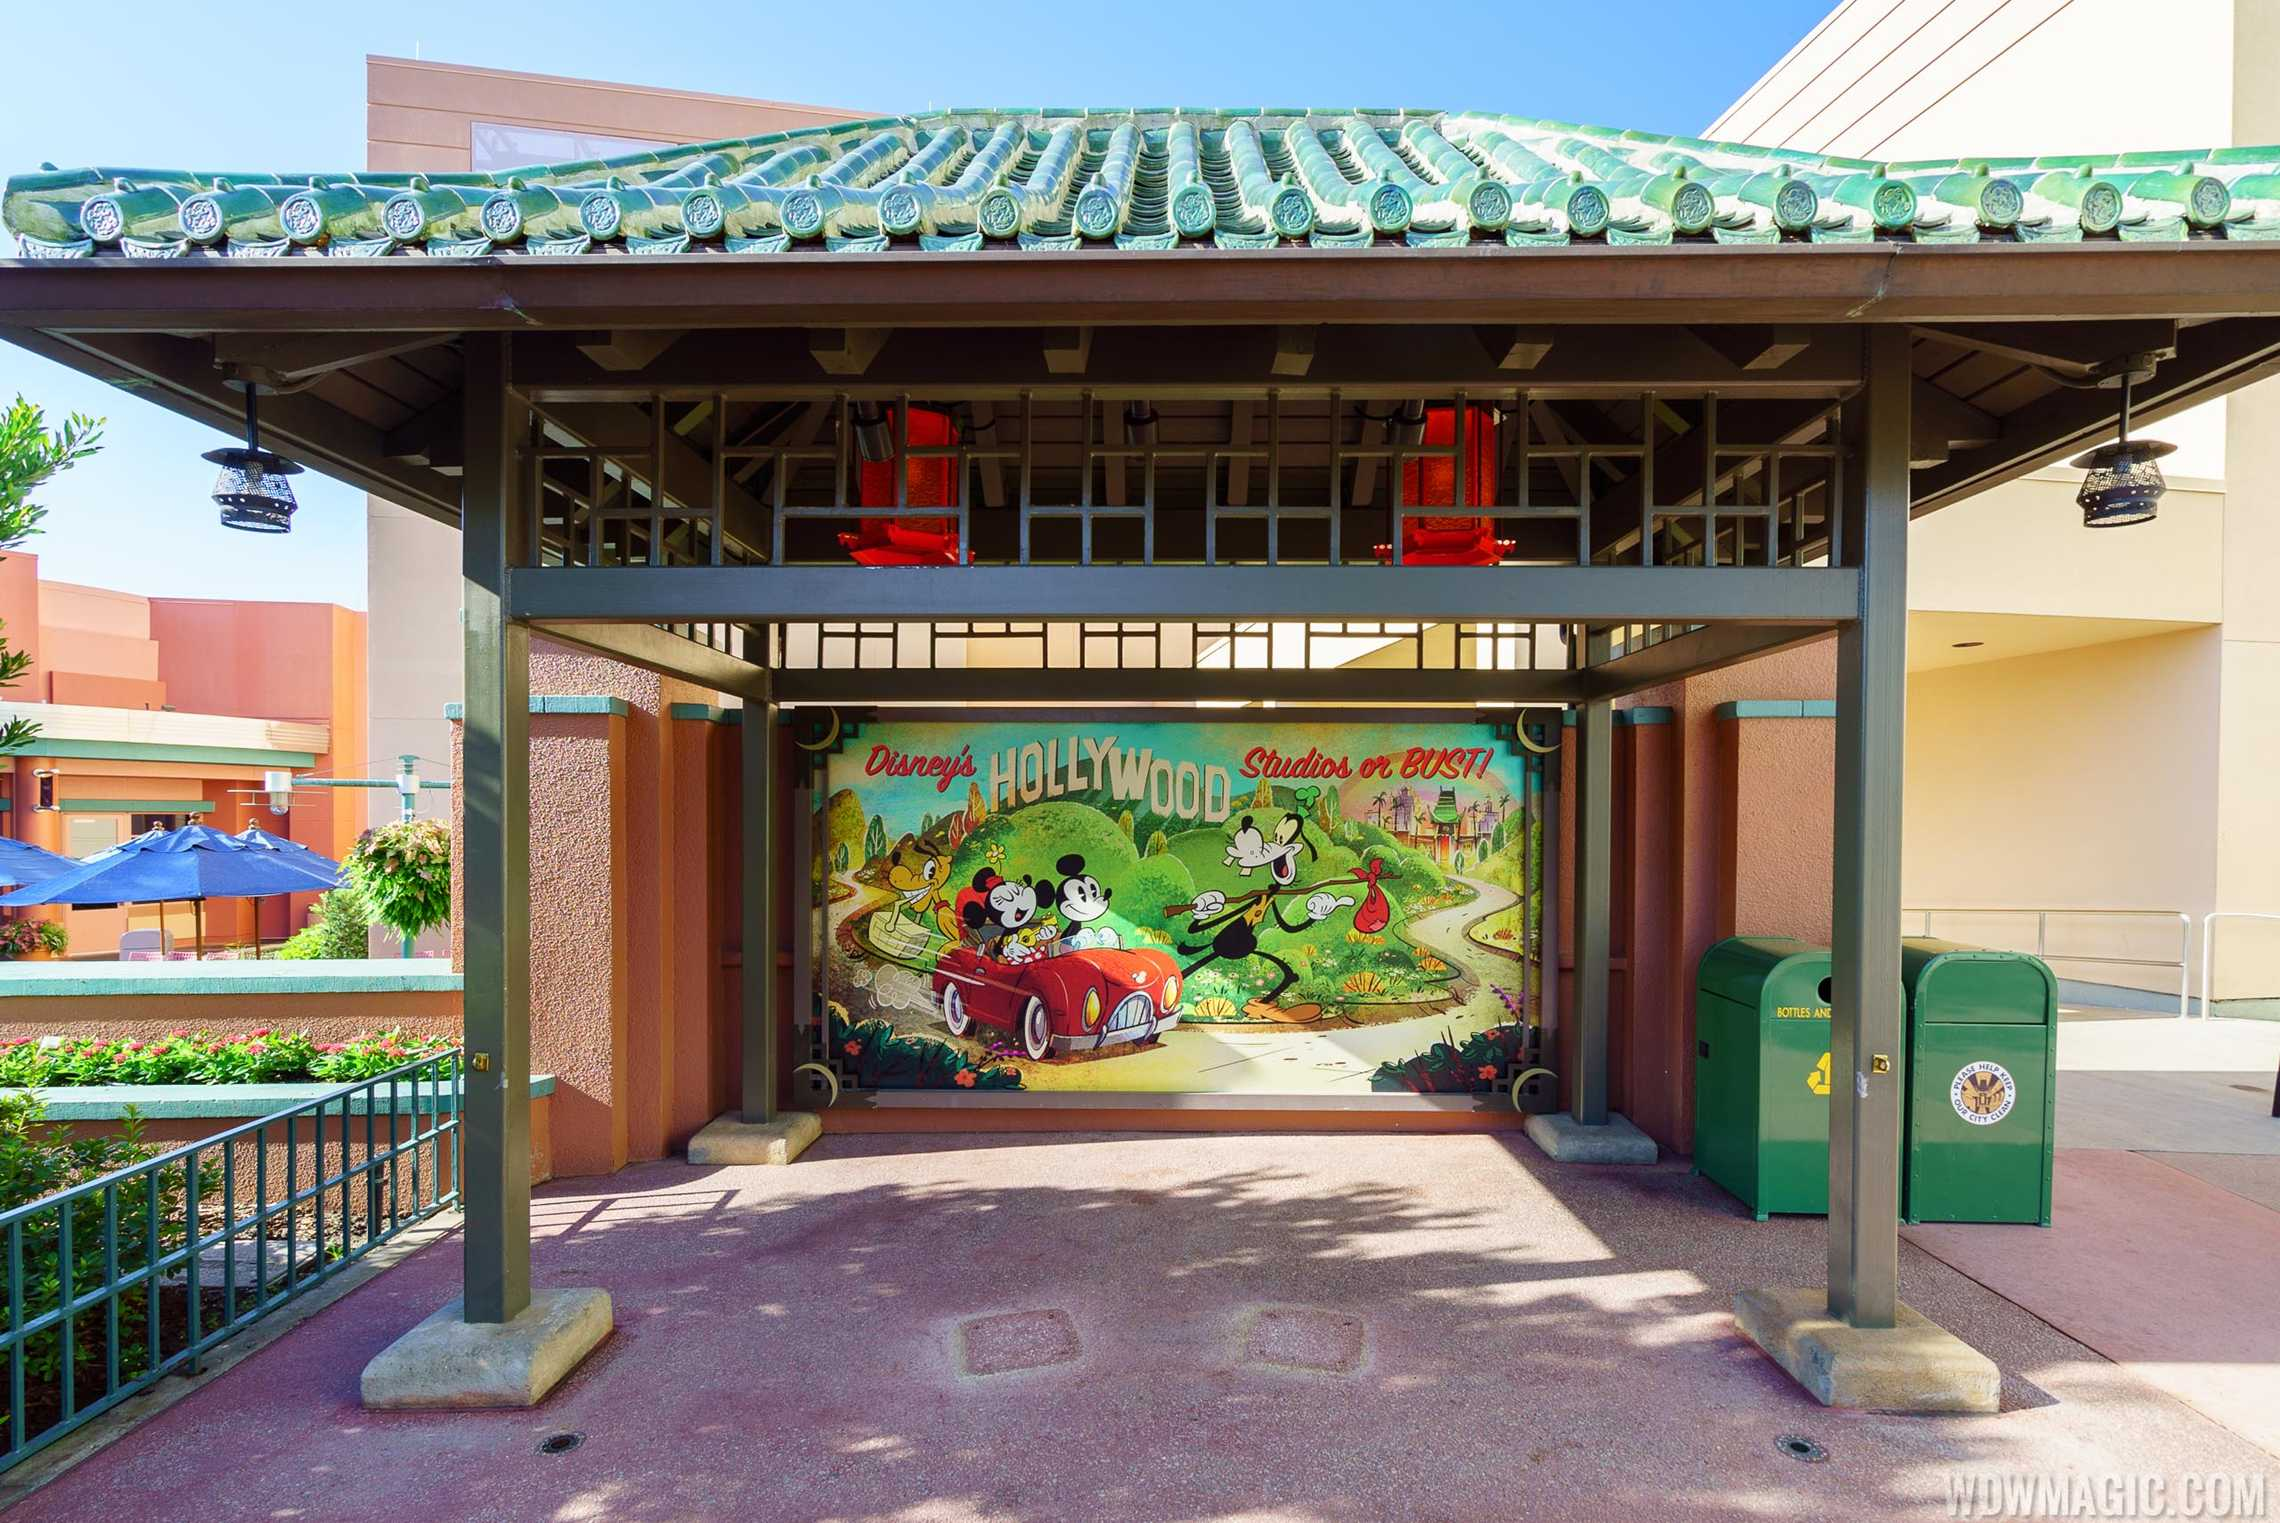 New photo op in the former TCM photo op location